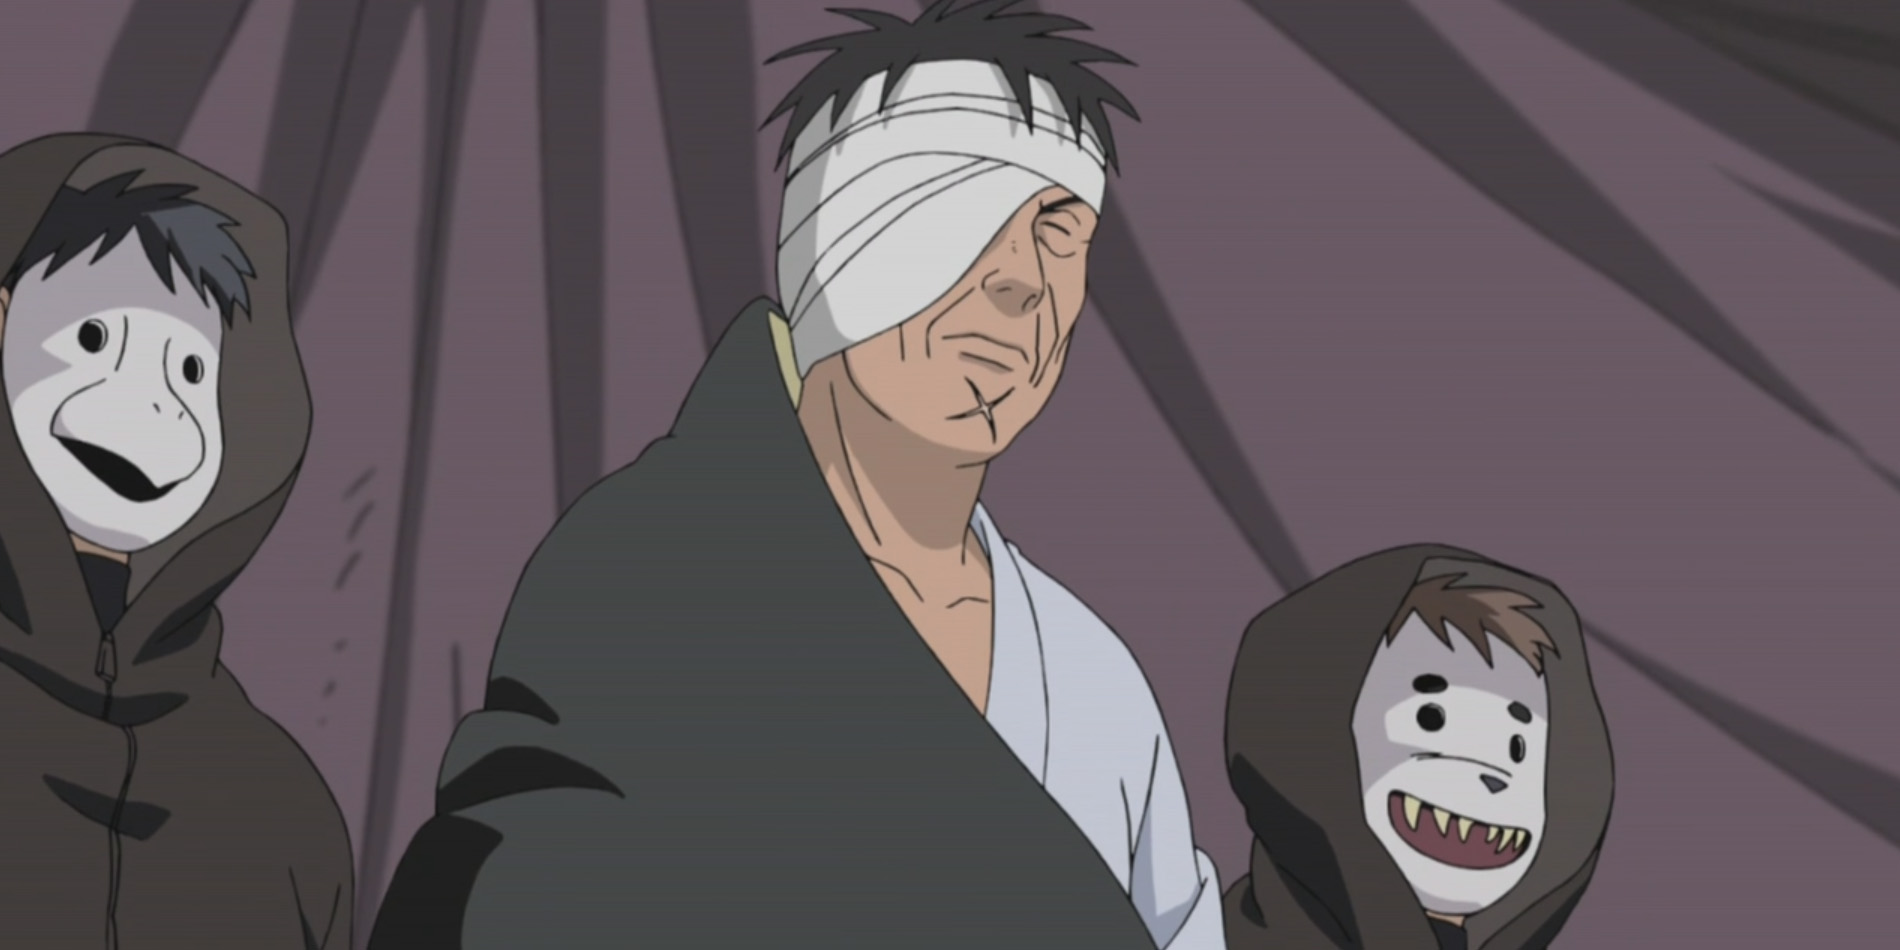 20 Fan Theories About Naruto's Villains So Crazy They Might Be True